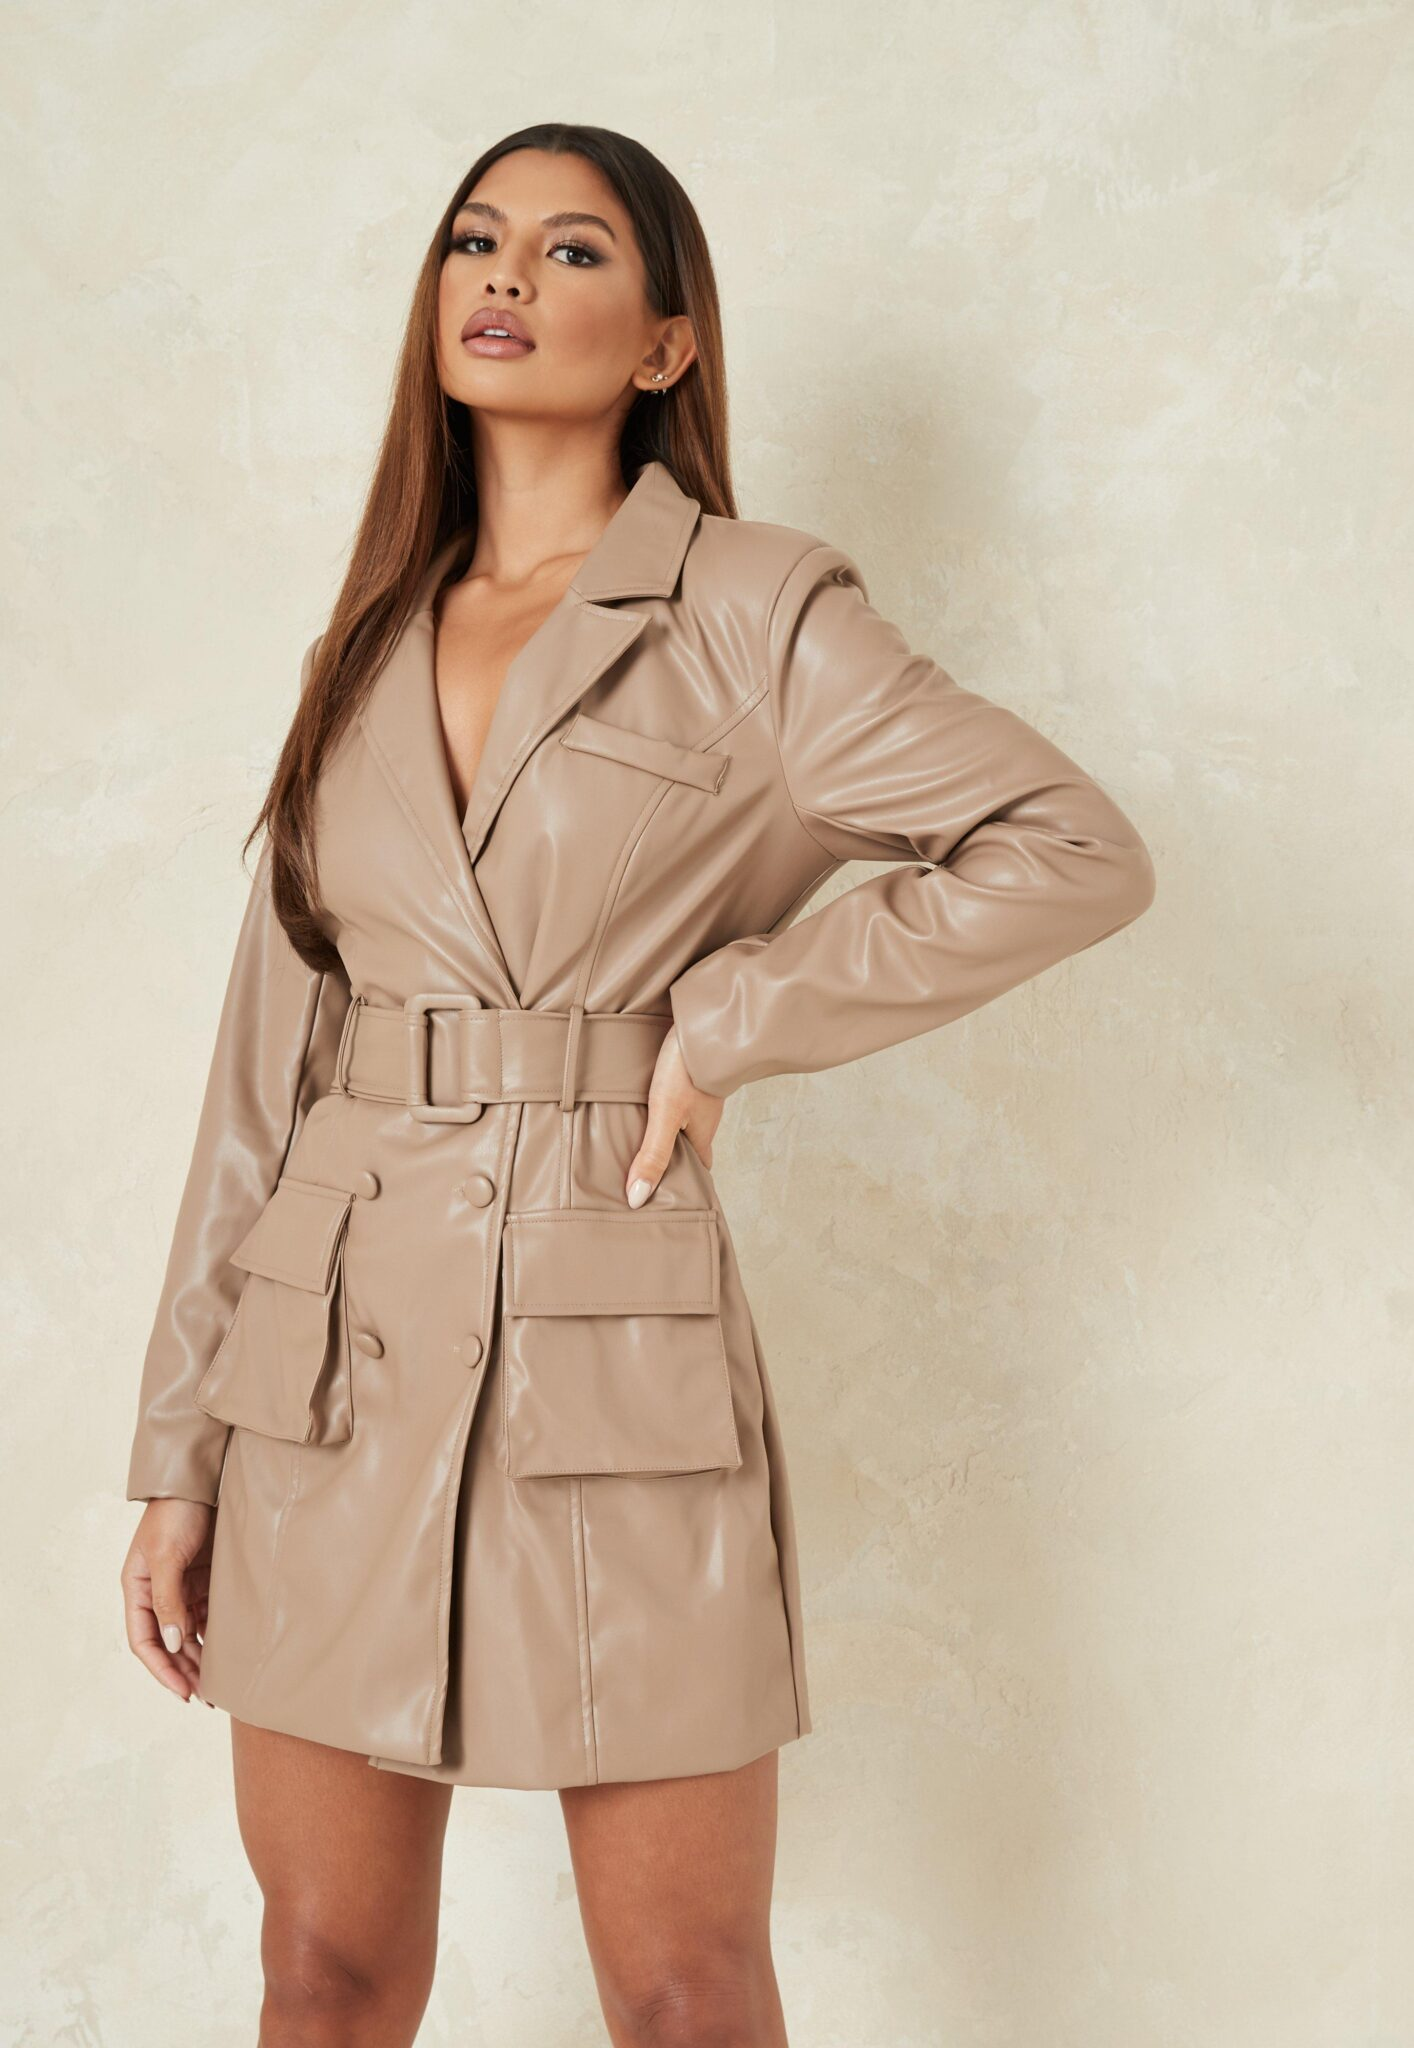 mauve faux leather belted blazer dress $44.00